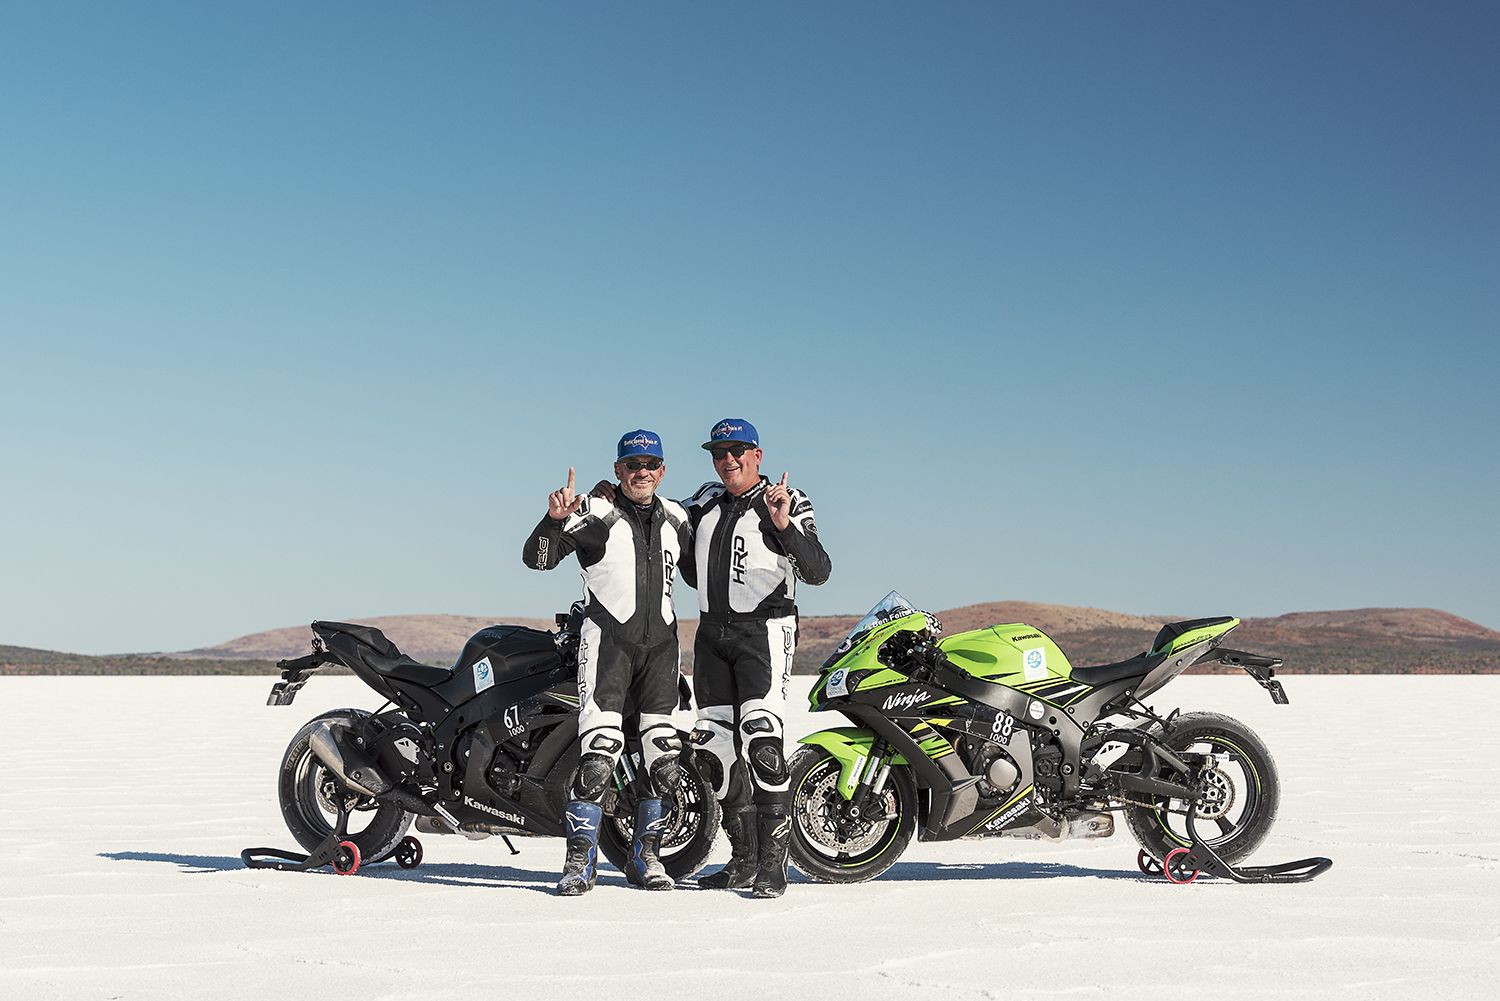 Kevin Magee and Ben Felten with black and green Kawasaki ZX10R motorcycles